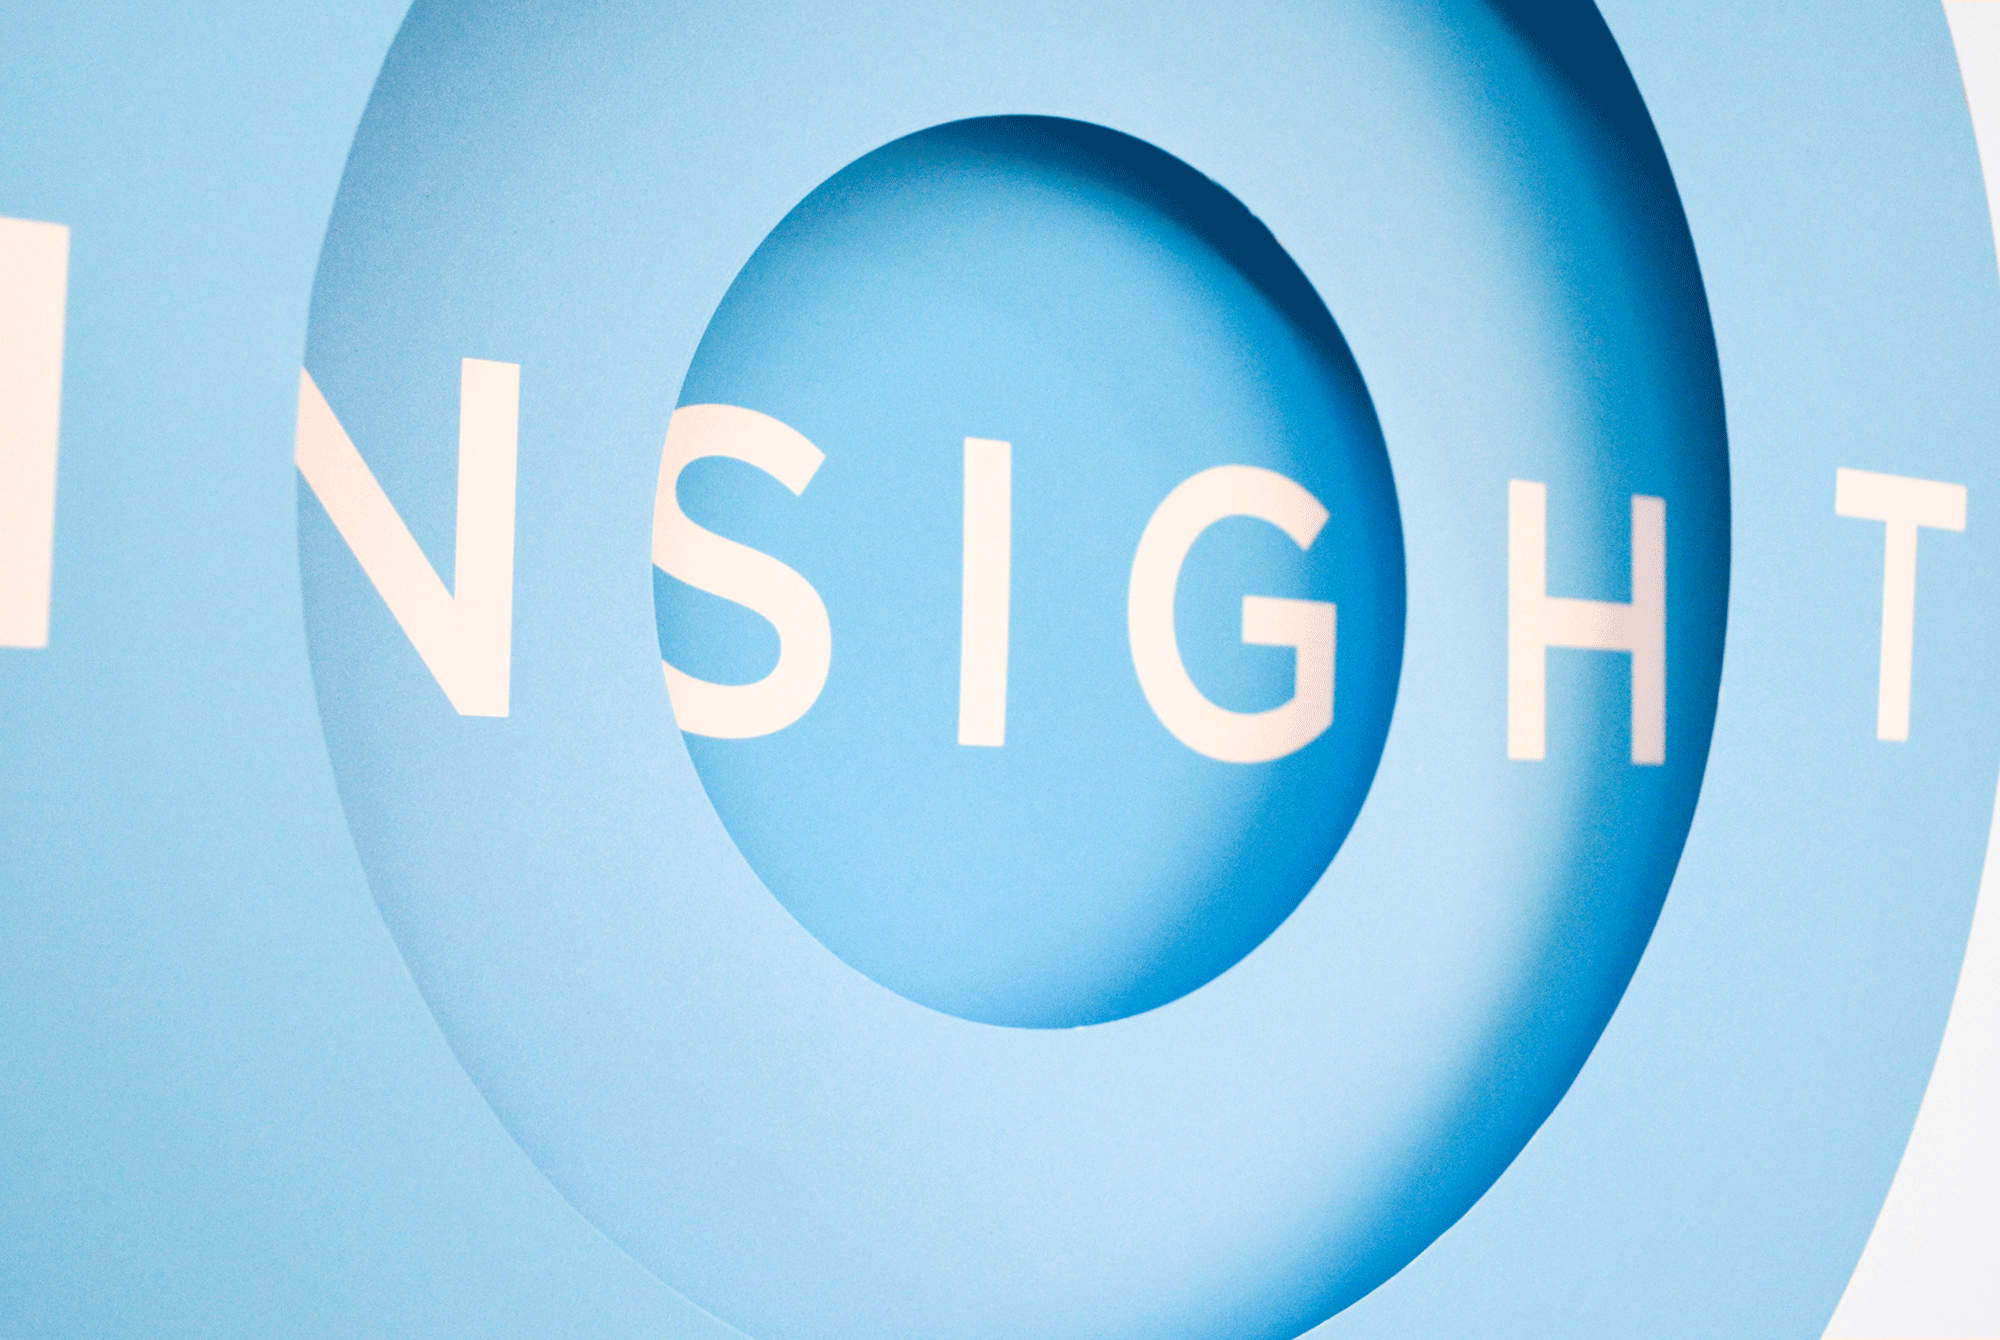 Insight_Poster.png